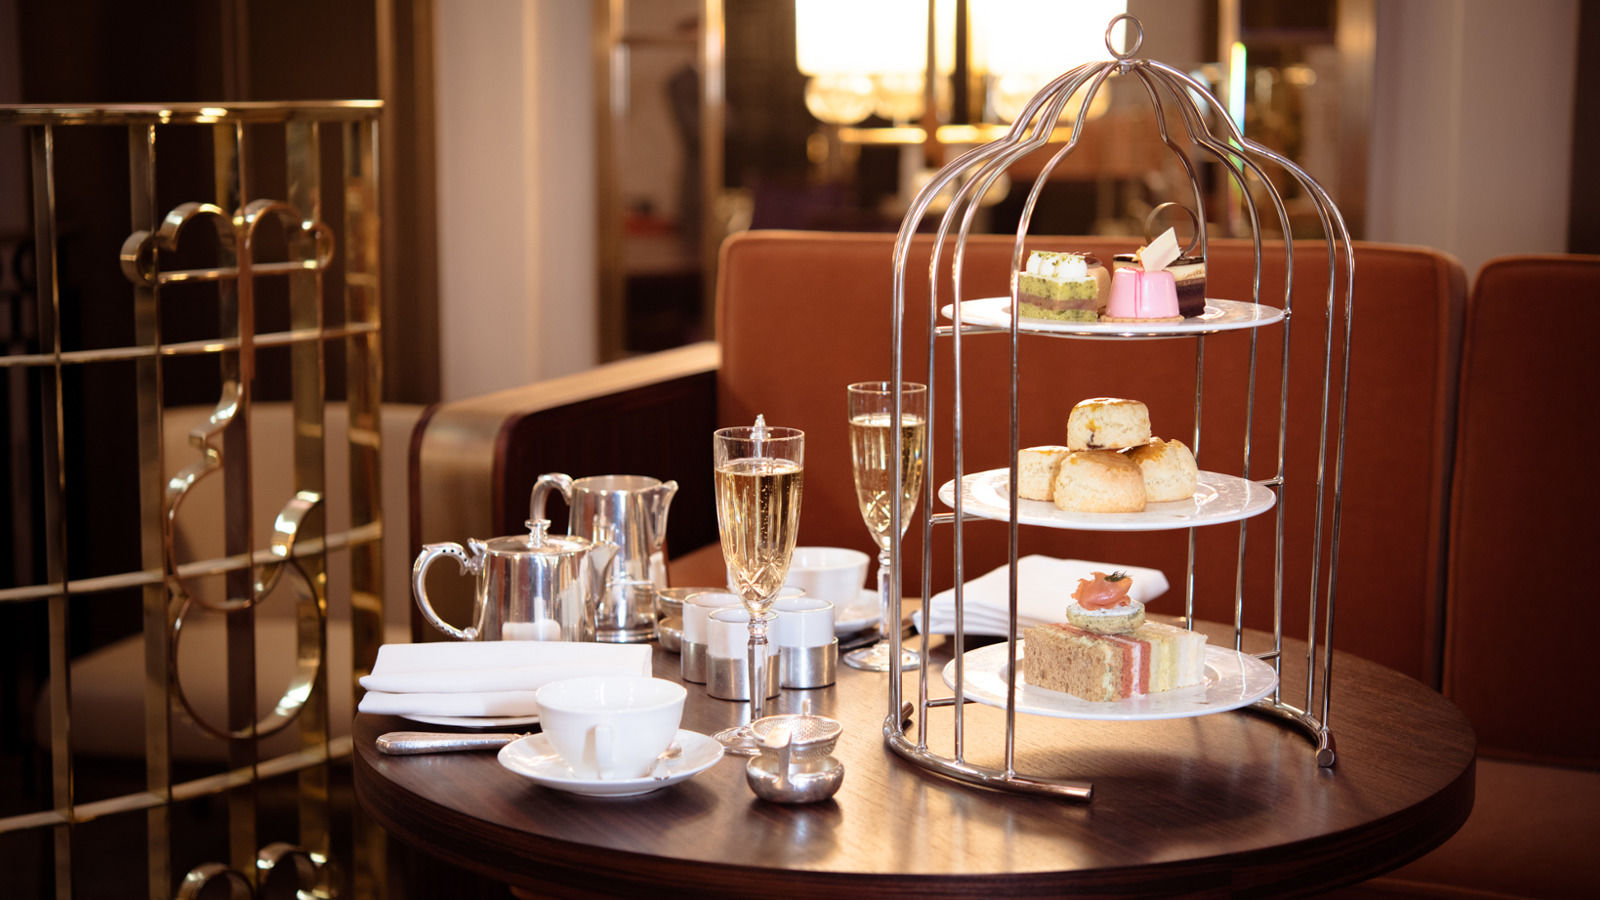 Enjoy Afternoon Tea in Mayfair, in the beautiful Art Deco surroundings of the Palm Court at The Park Lane Hotel.